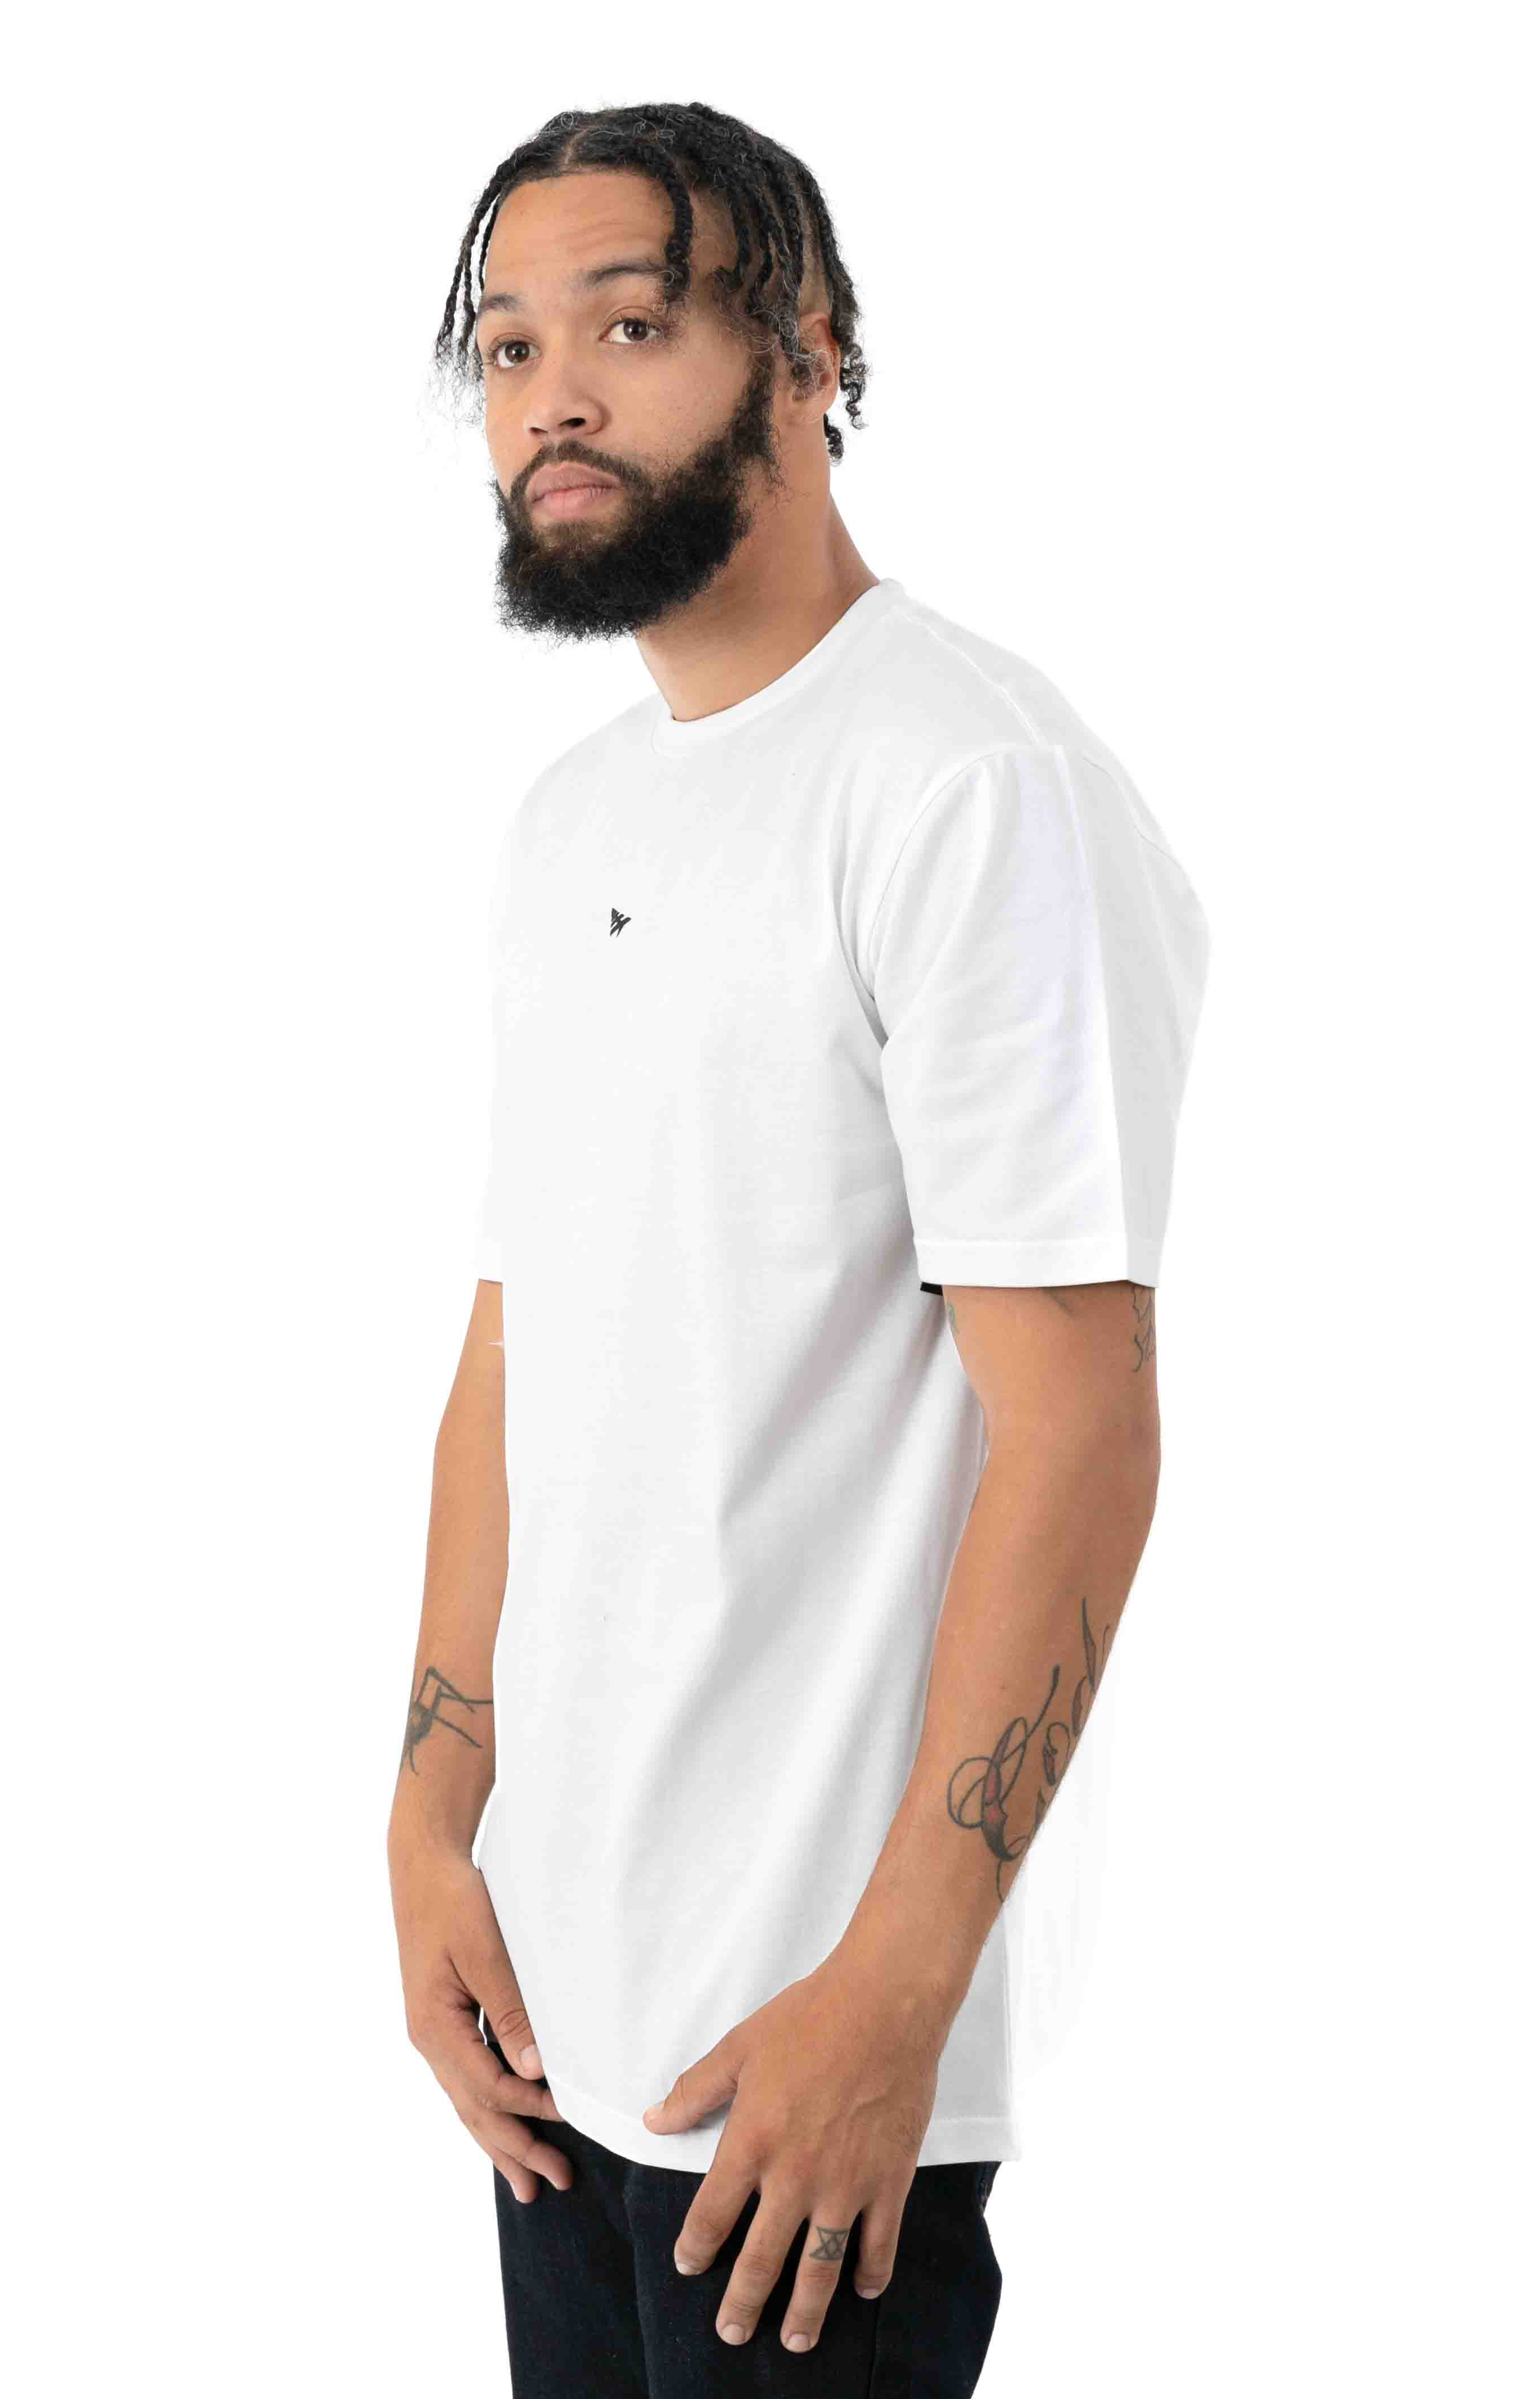 Headspin T-Shirt - White  2